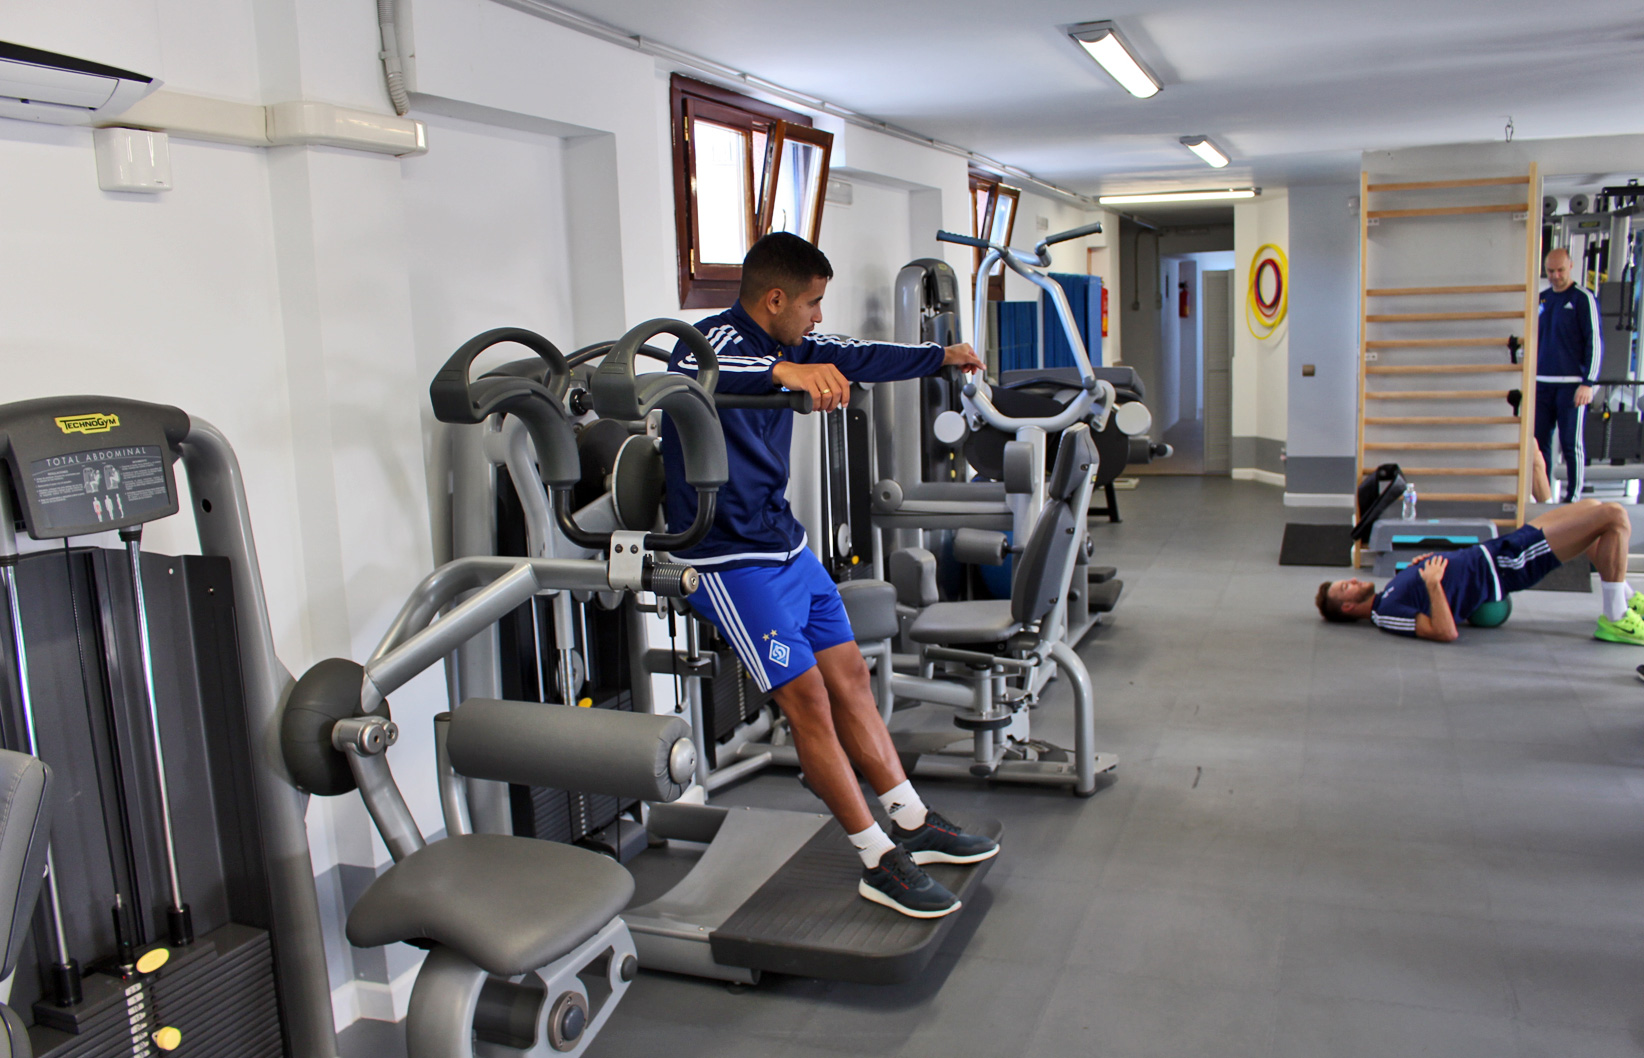 MARBELLA FOOTBALL CENTER FULLY EQUIPPED GYM